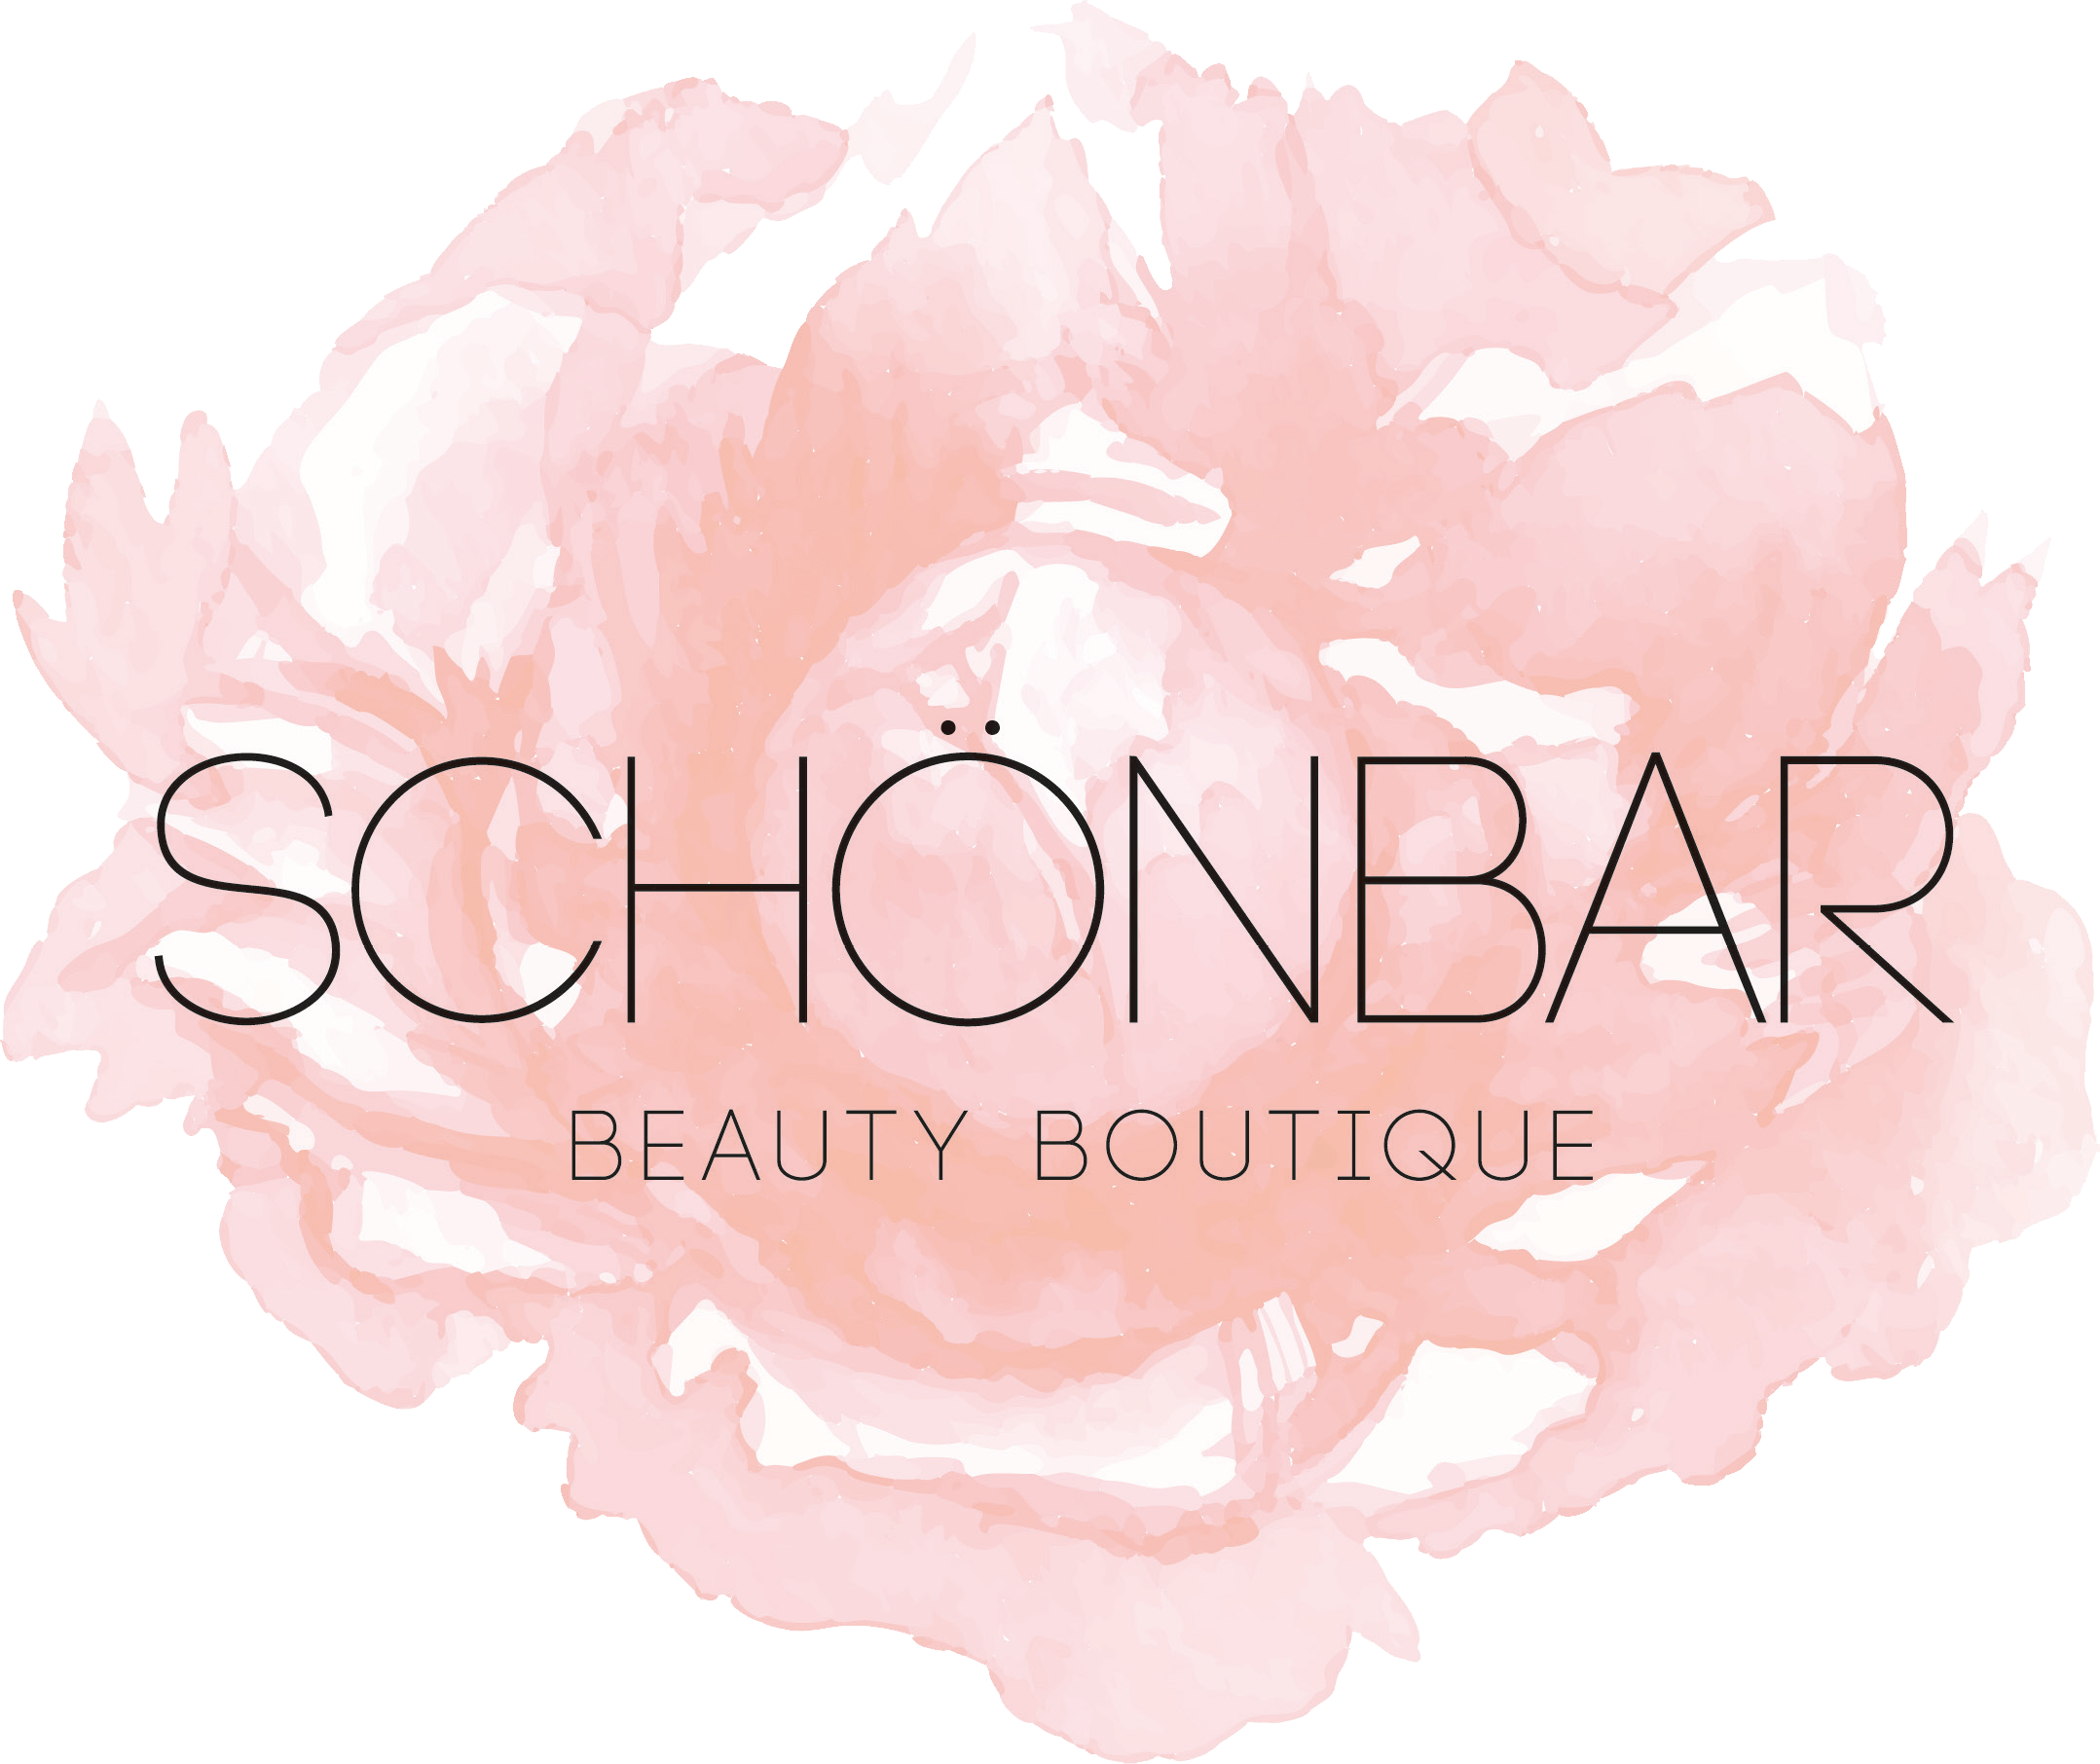 Schönbar Beauty Boutique